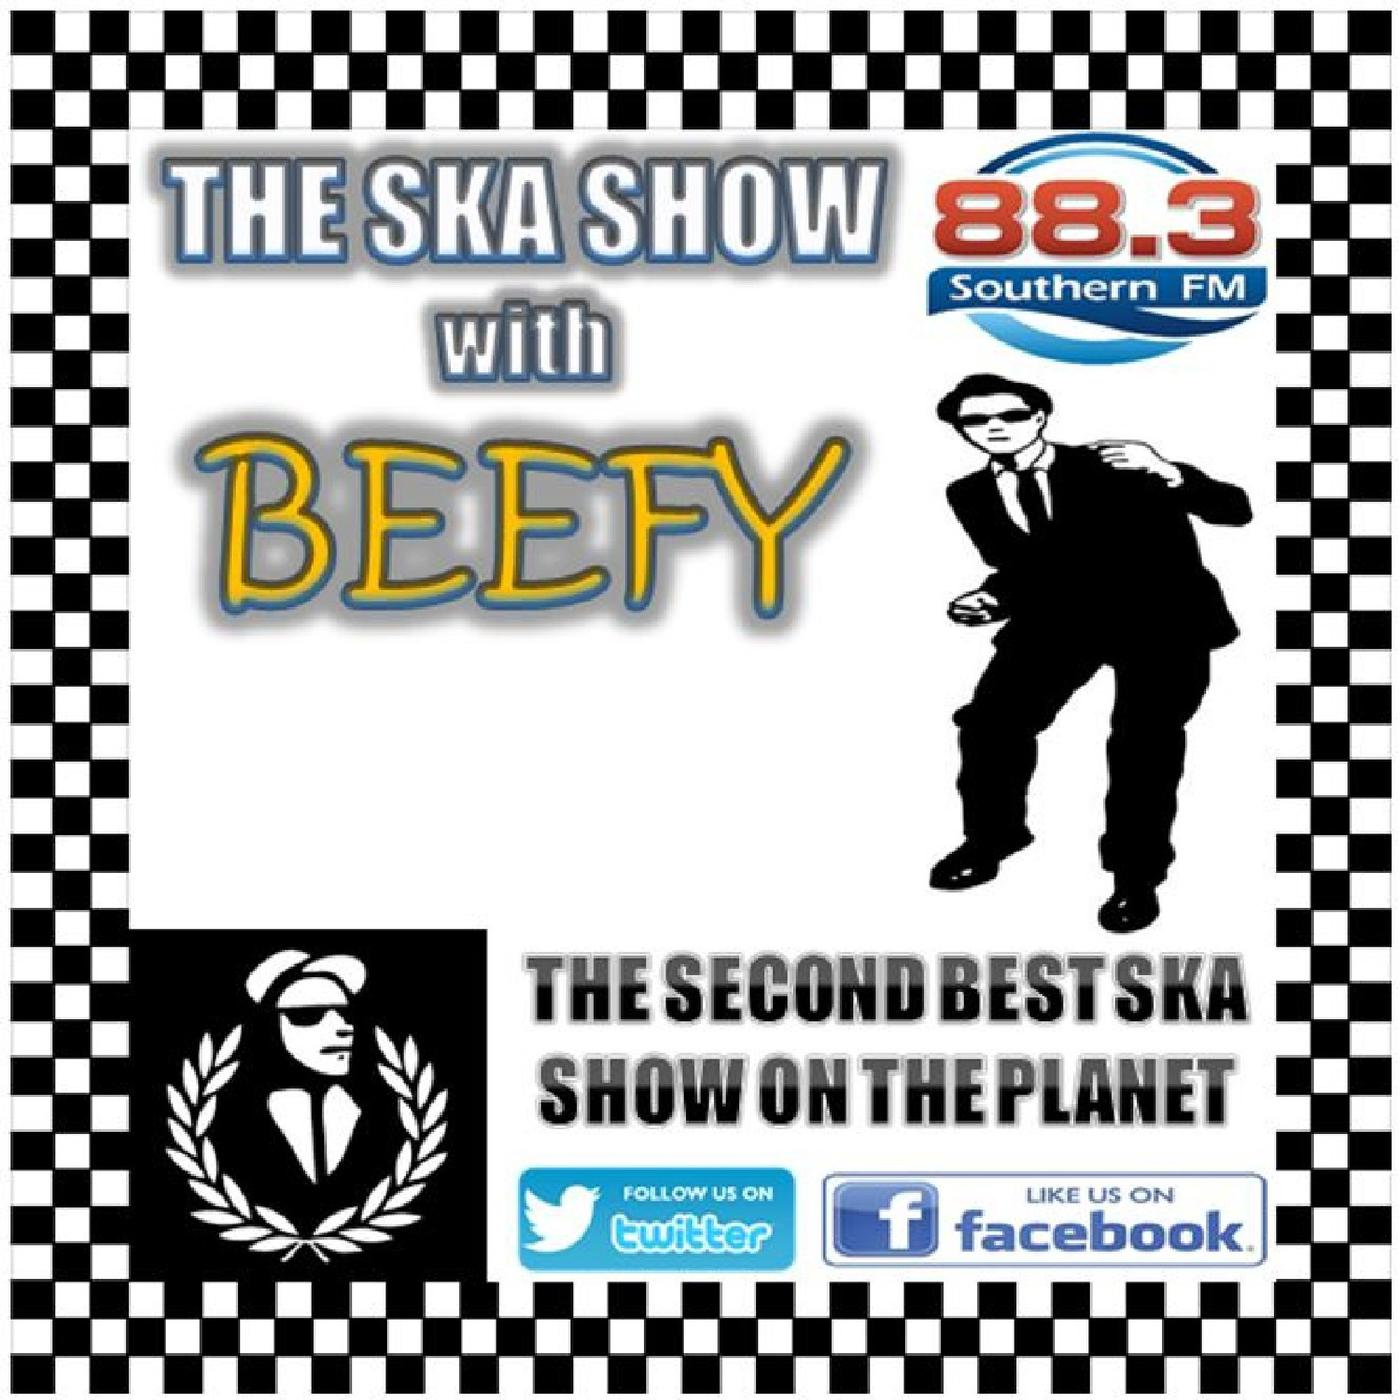 The Masita Ska Show with Beefy, January 14th 2020 (1st Hour)